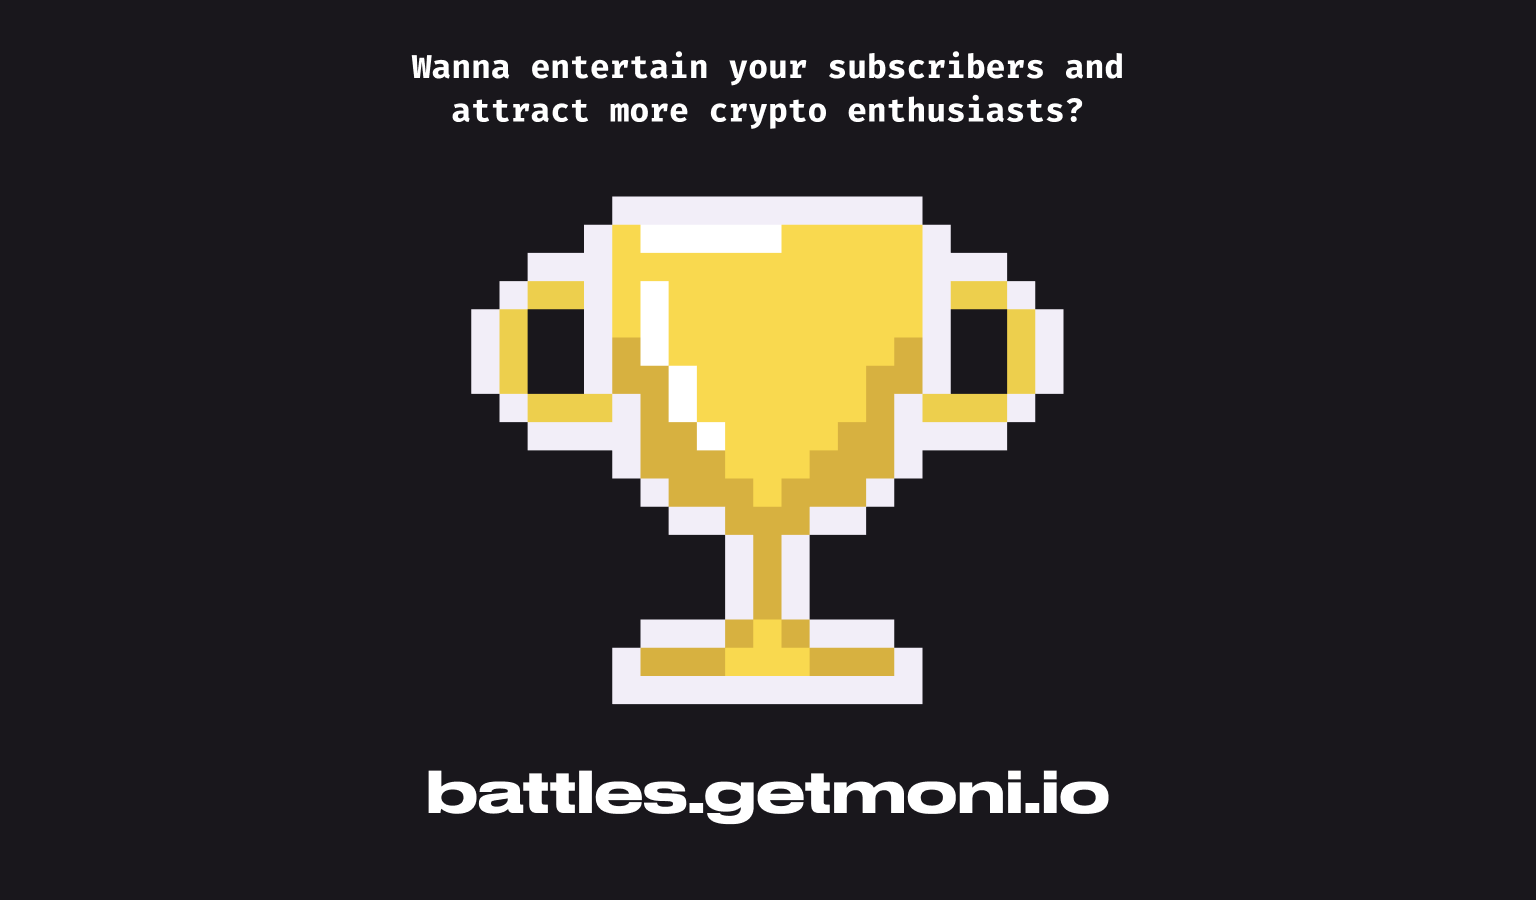 Moni Battle is looking for partners